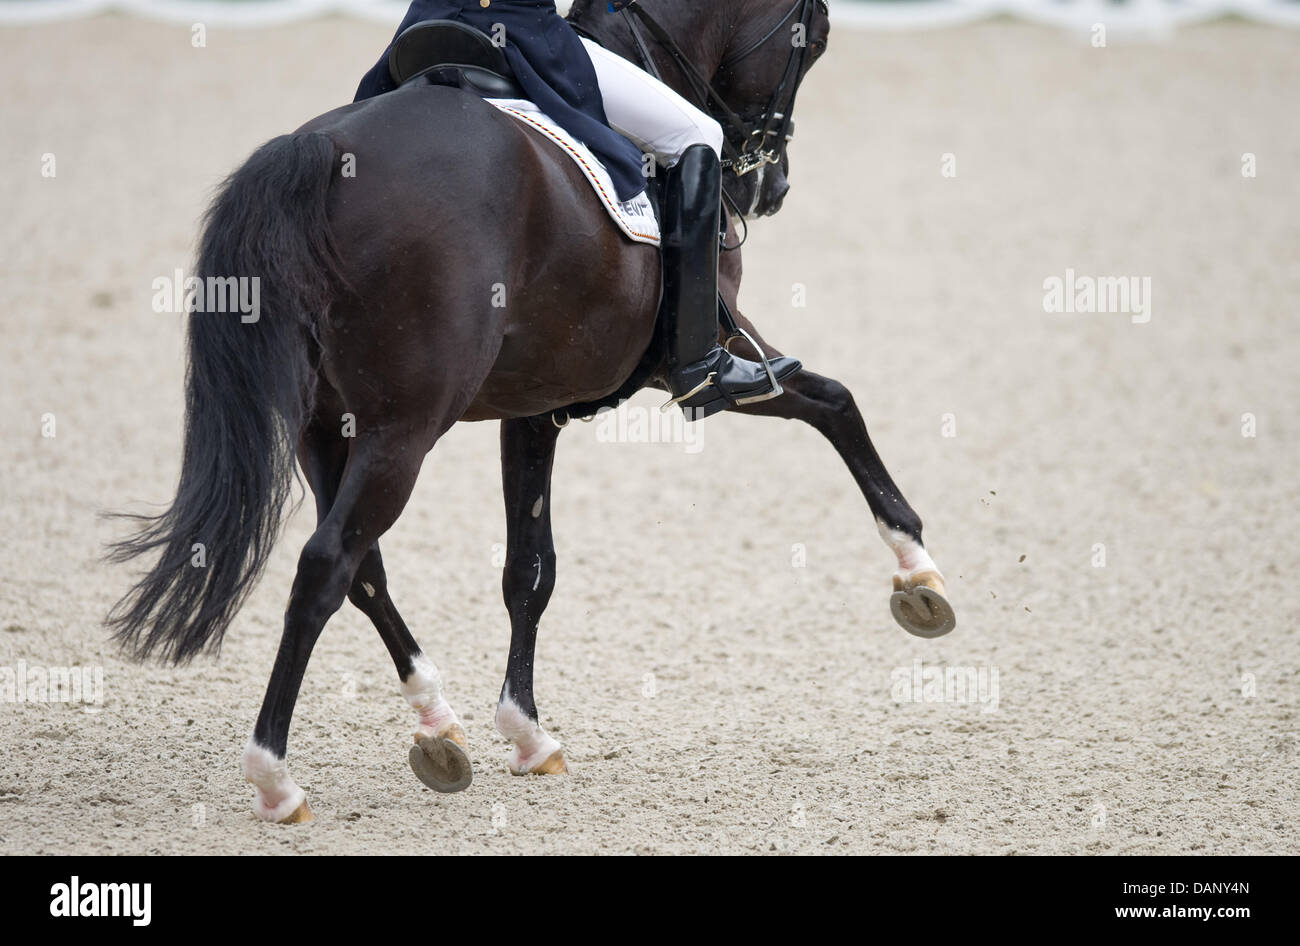 Matthias Alexander Rath rides Totilas during the dressage riding at the CHIO in Aachen, Germany, 14 July 2011. The - Stock Image